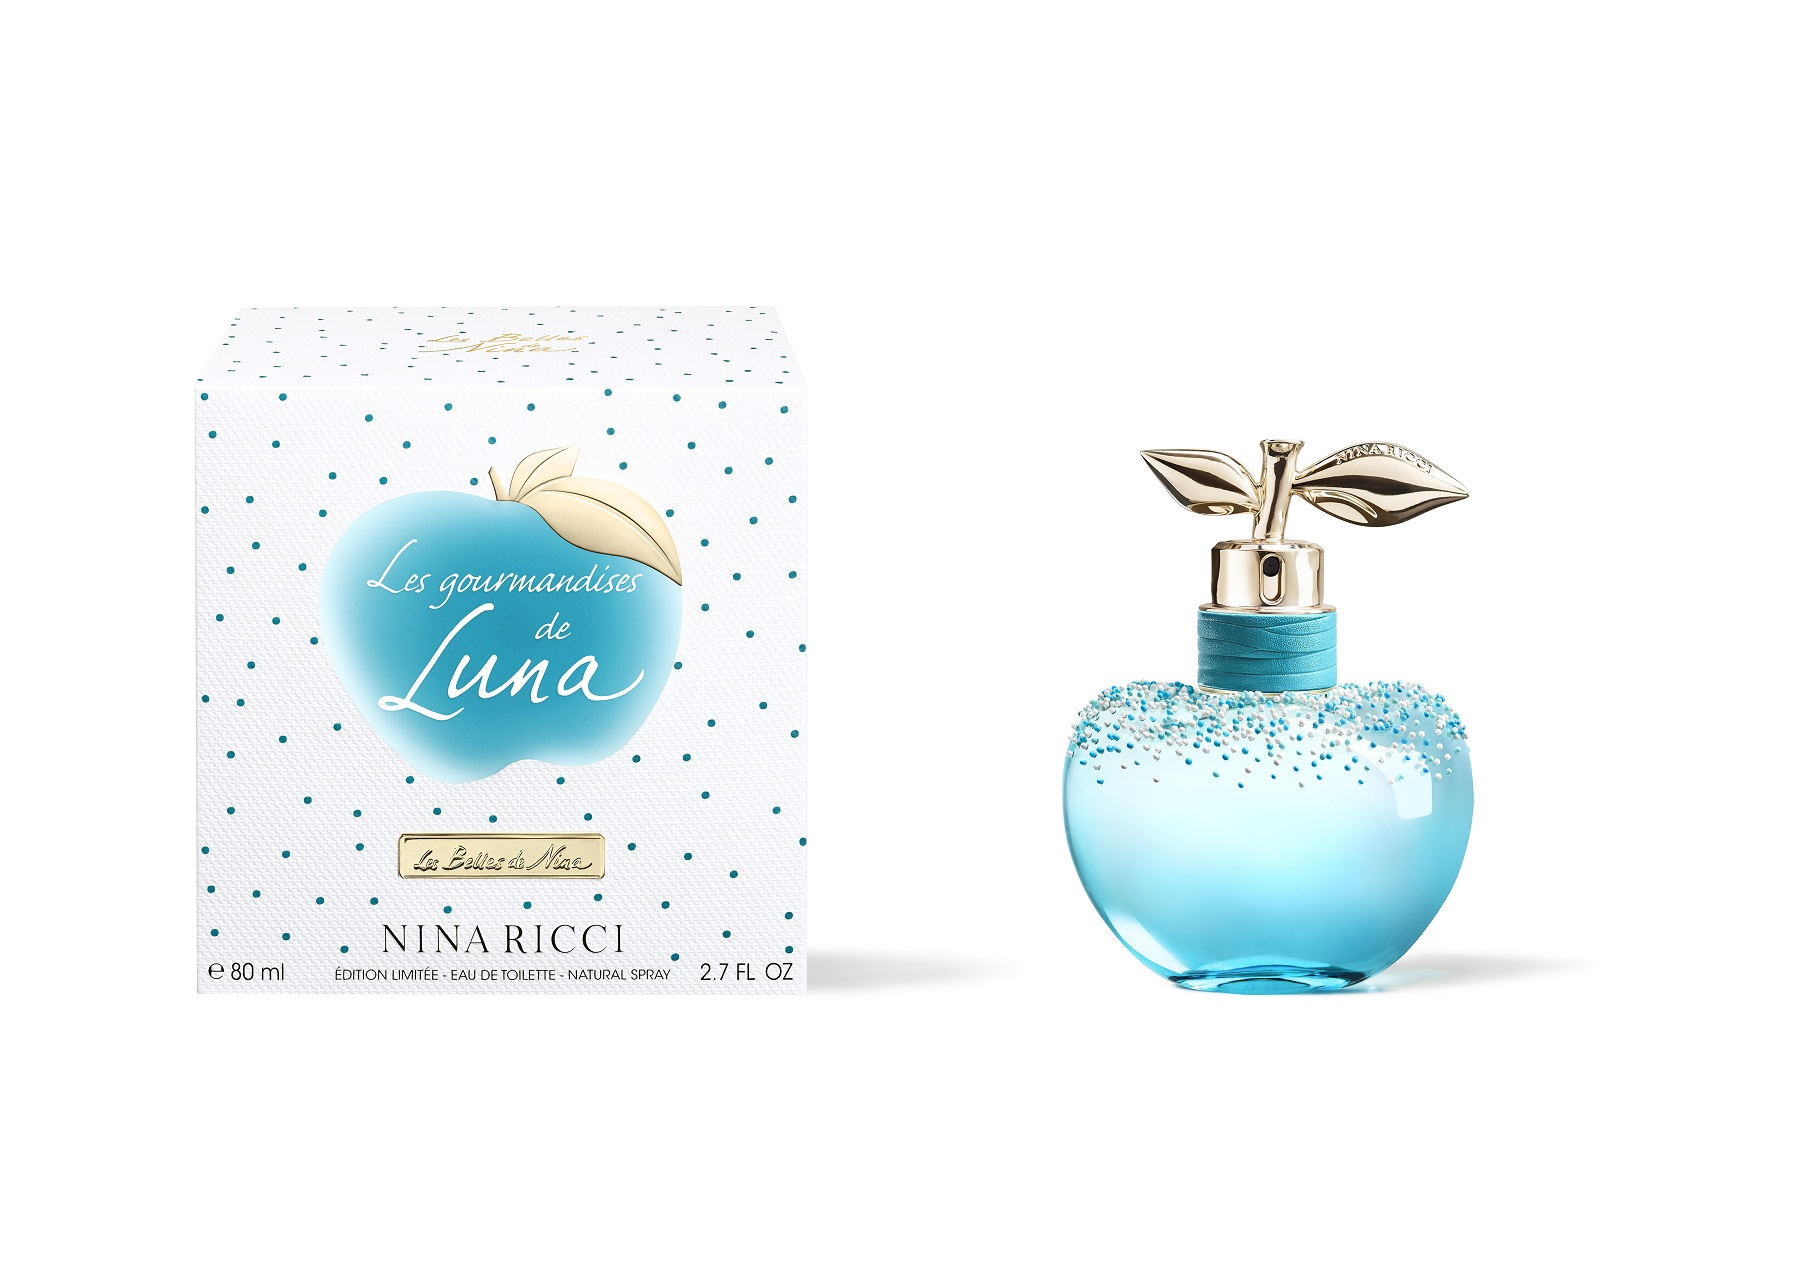 Nina Ricci Luna Limited Edition Eau De Toilette 50ml